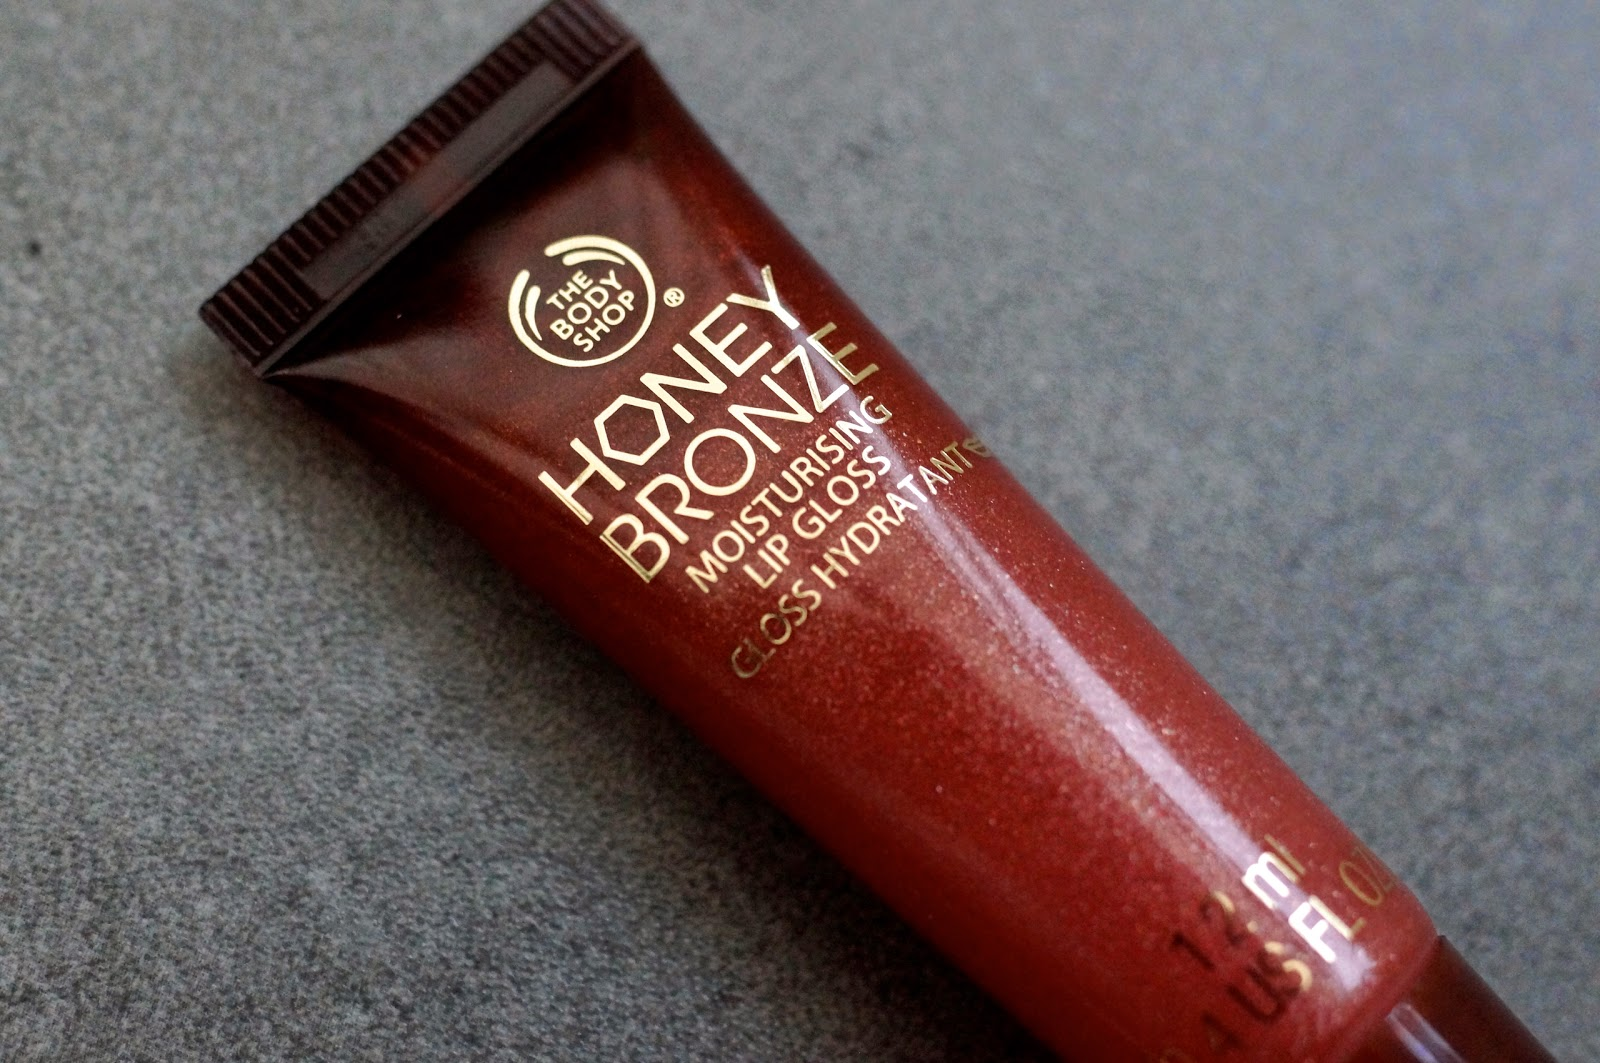 Honey Bronze Lip Nectar In Coral the body shop